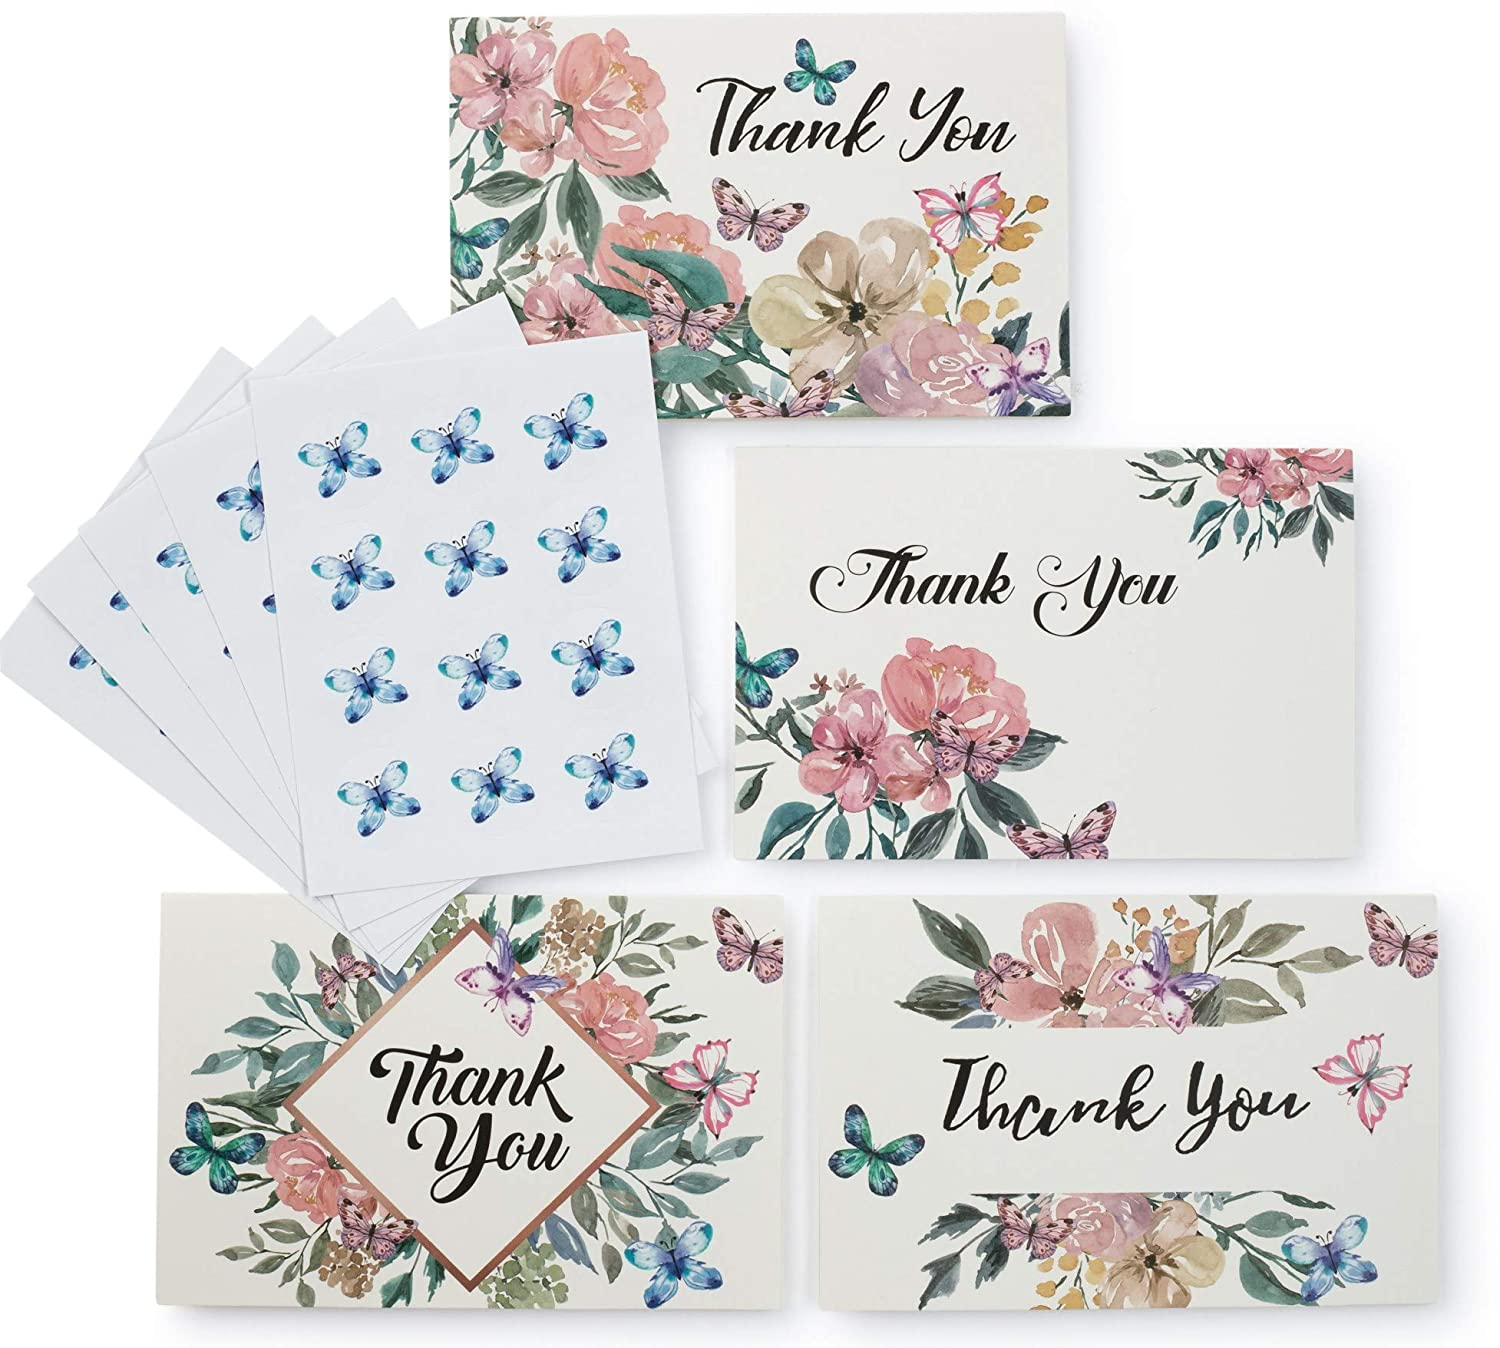 Banana basics floral thank you cards bulk set w envelopes 60 pack blank note cards 4 x 6 size 6 designs includes stickers wedding bridal showerbaby